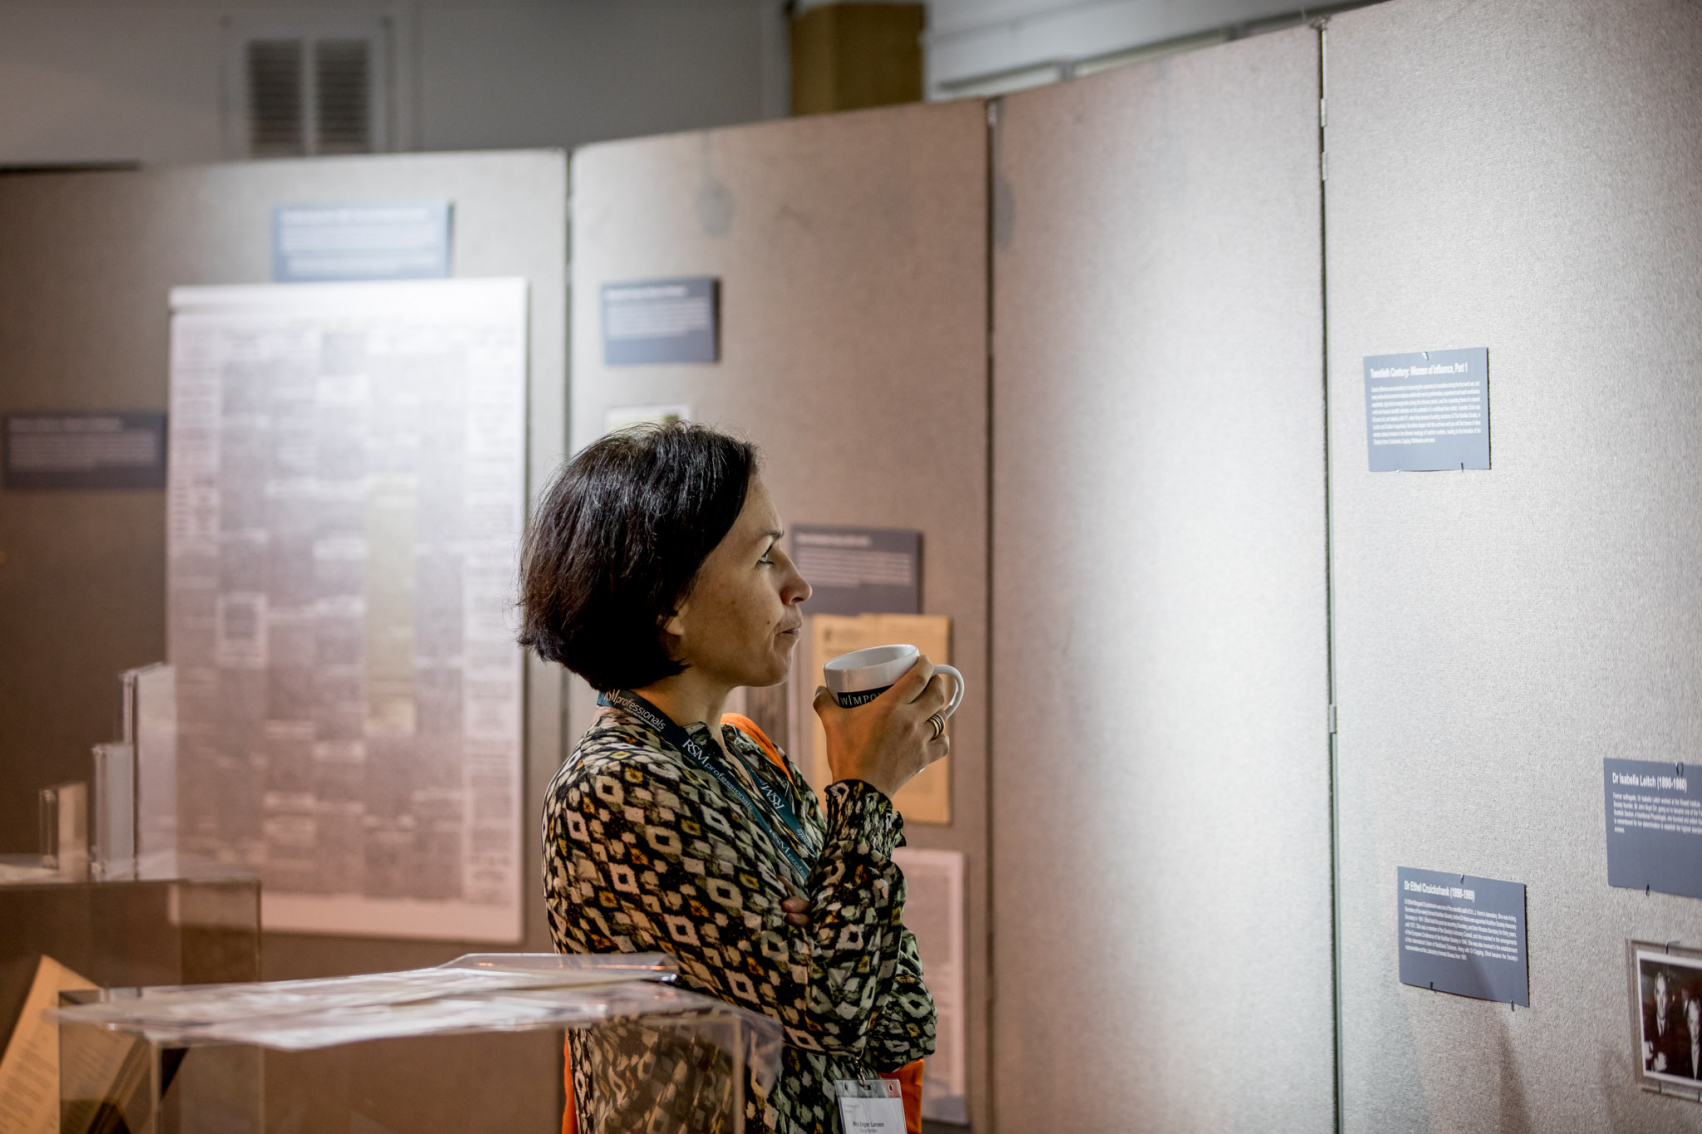 Delegate interacting with the Winter Conference archives exhibition